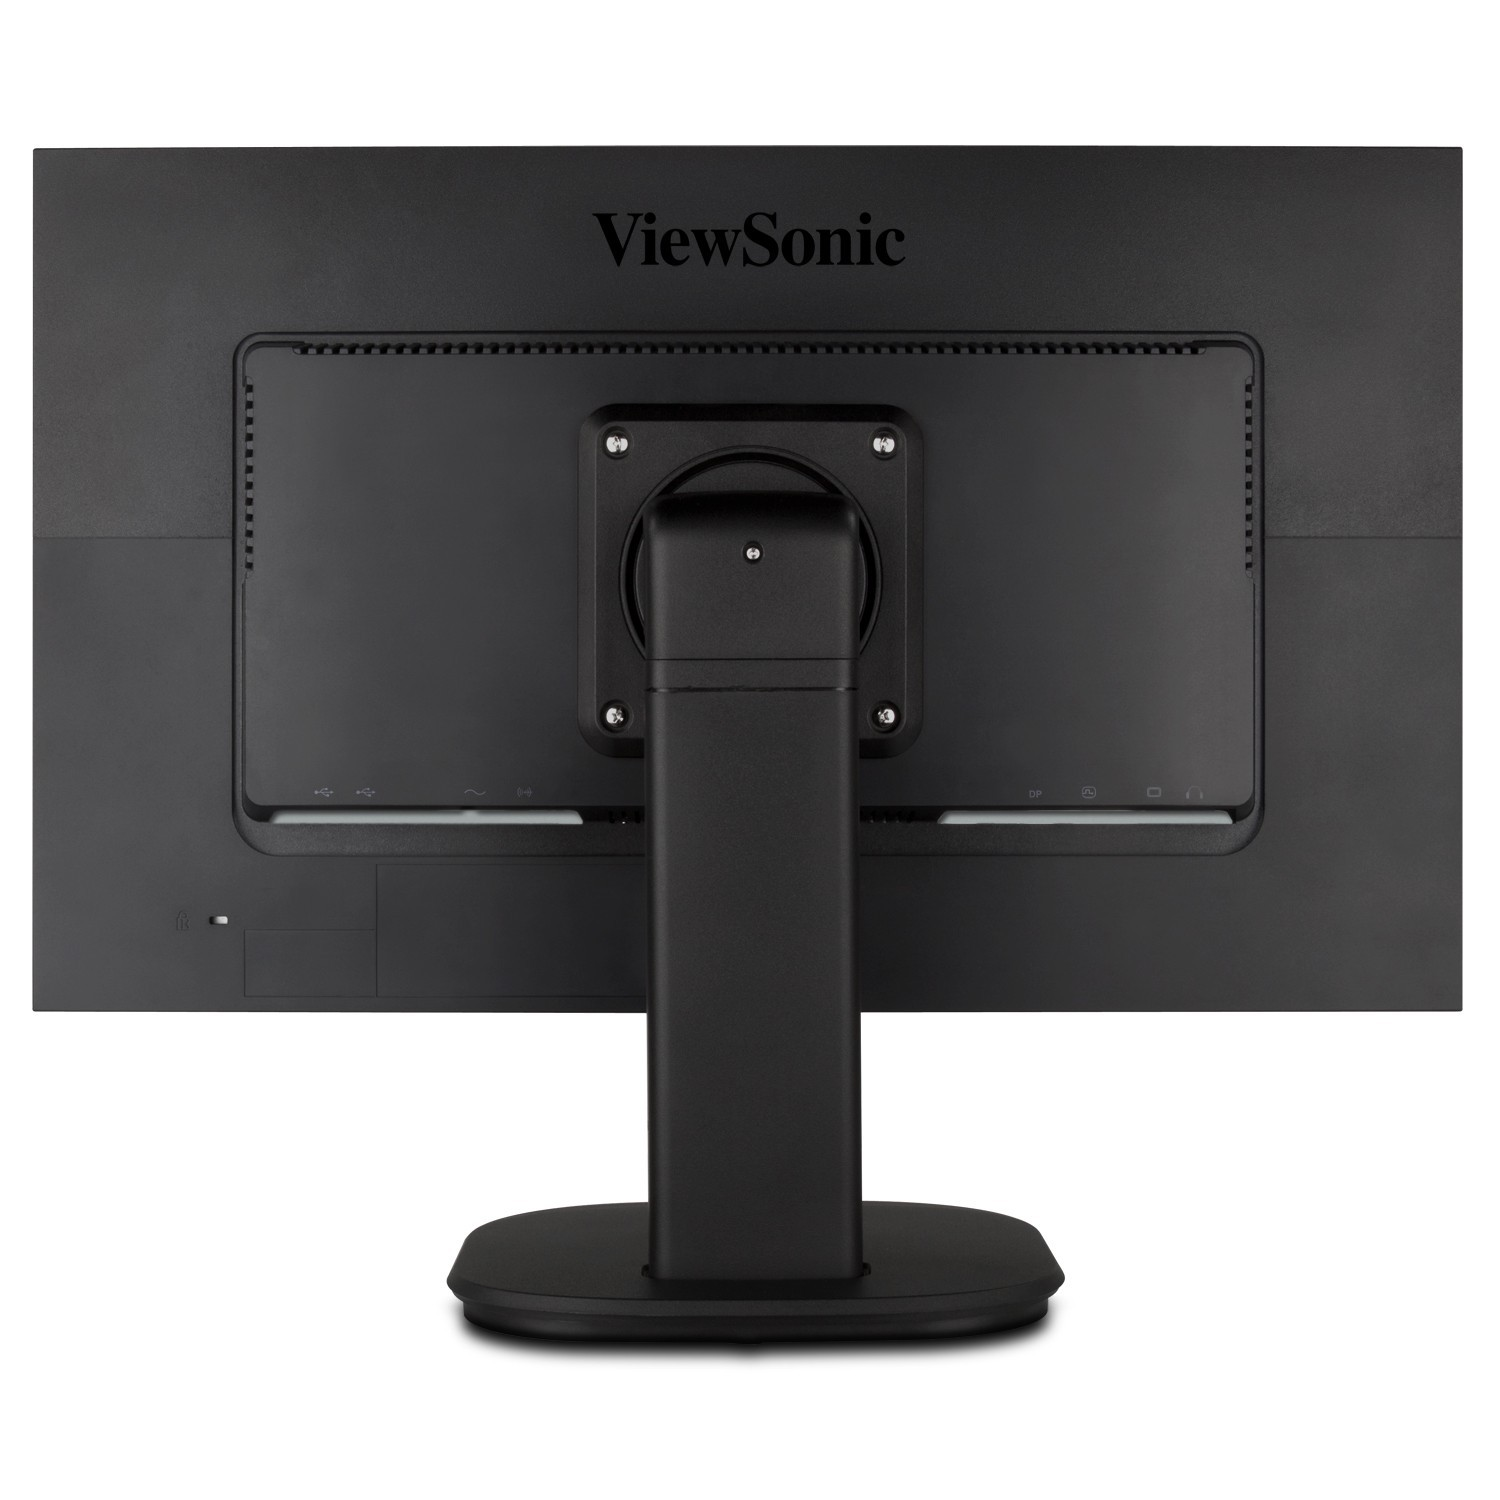 24 viewsonic monitor at mighty ape nz. Black Bedroom Furniture Sets. Home Design Ideas